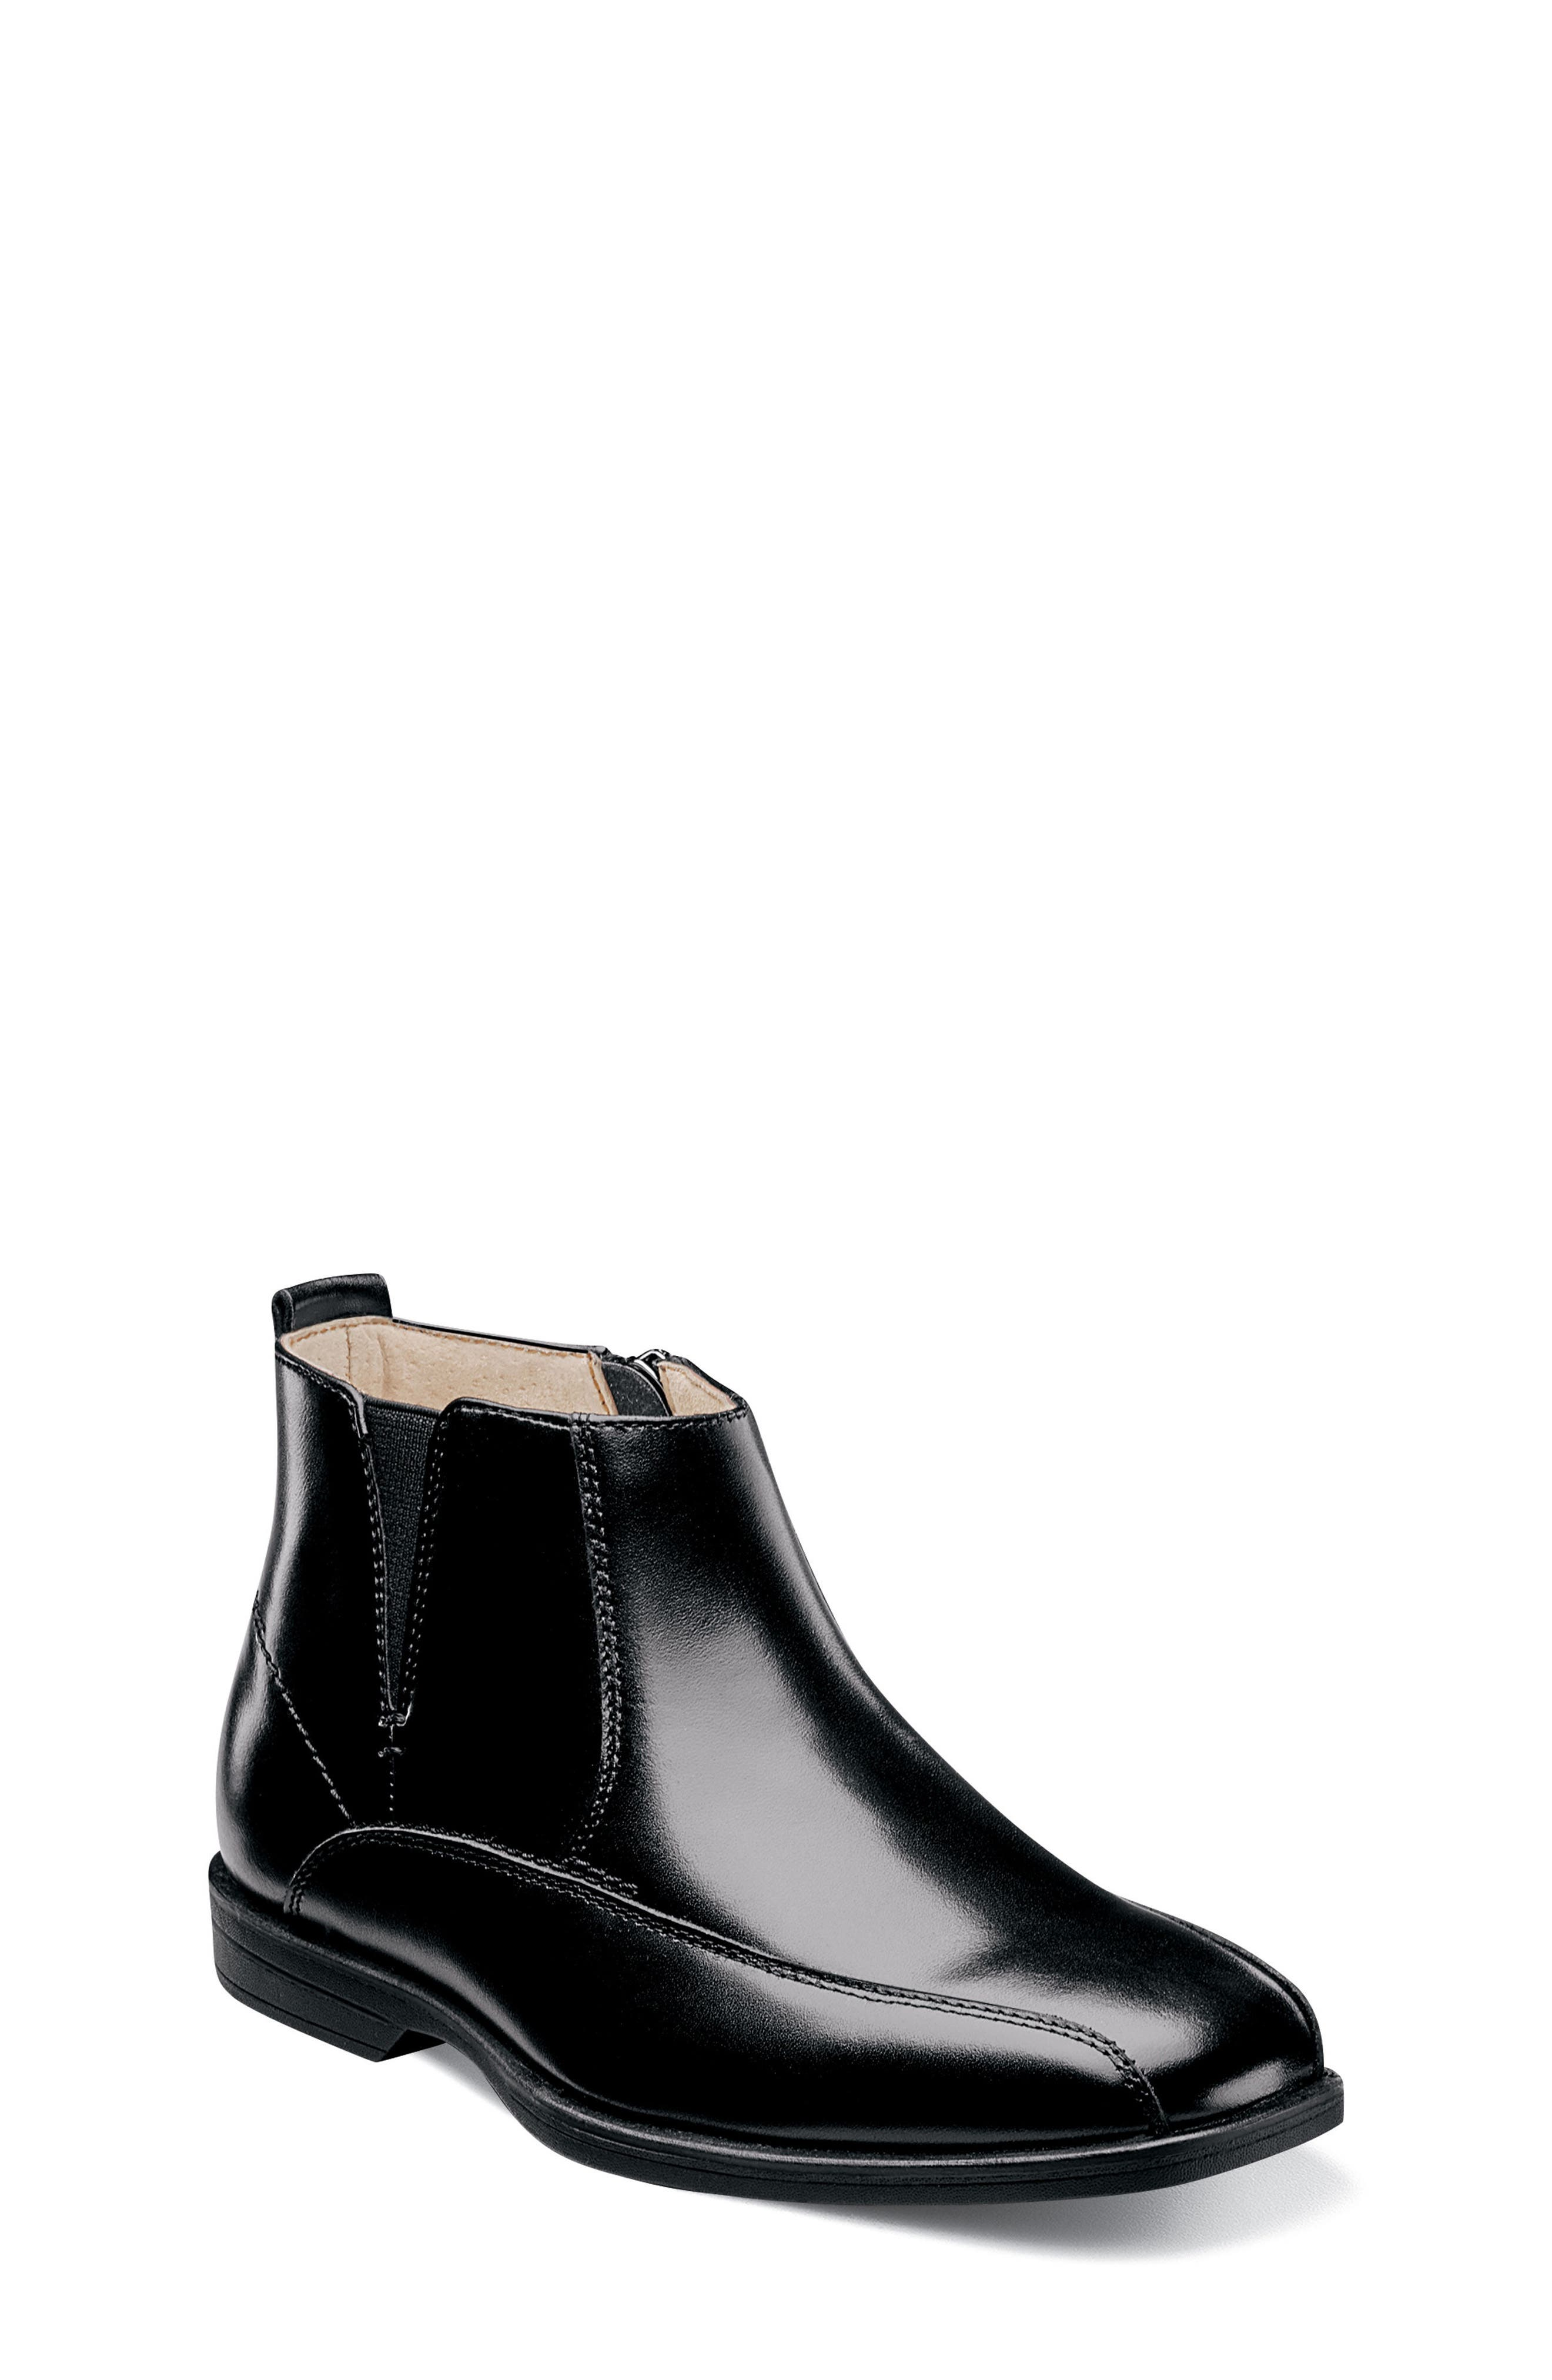 Reveal Chelsea Boot,                             Alternate thumbnail 2, color,                             BLACK